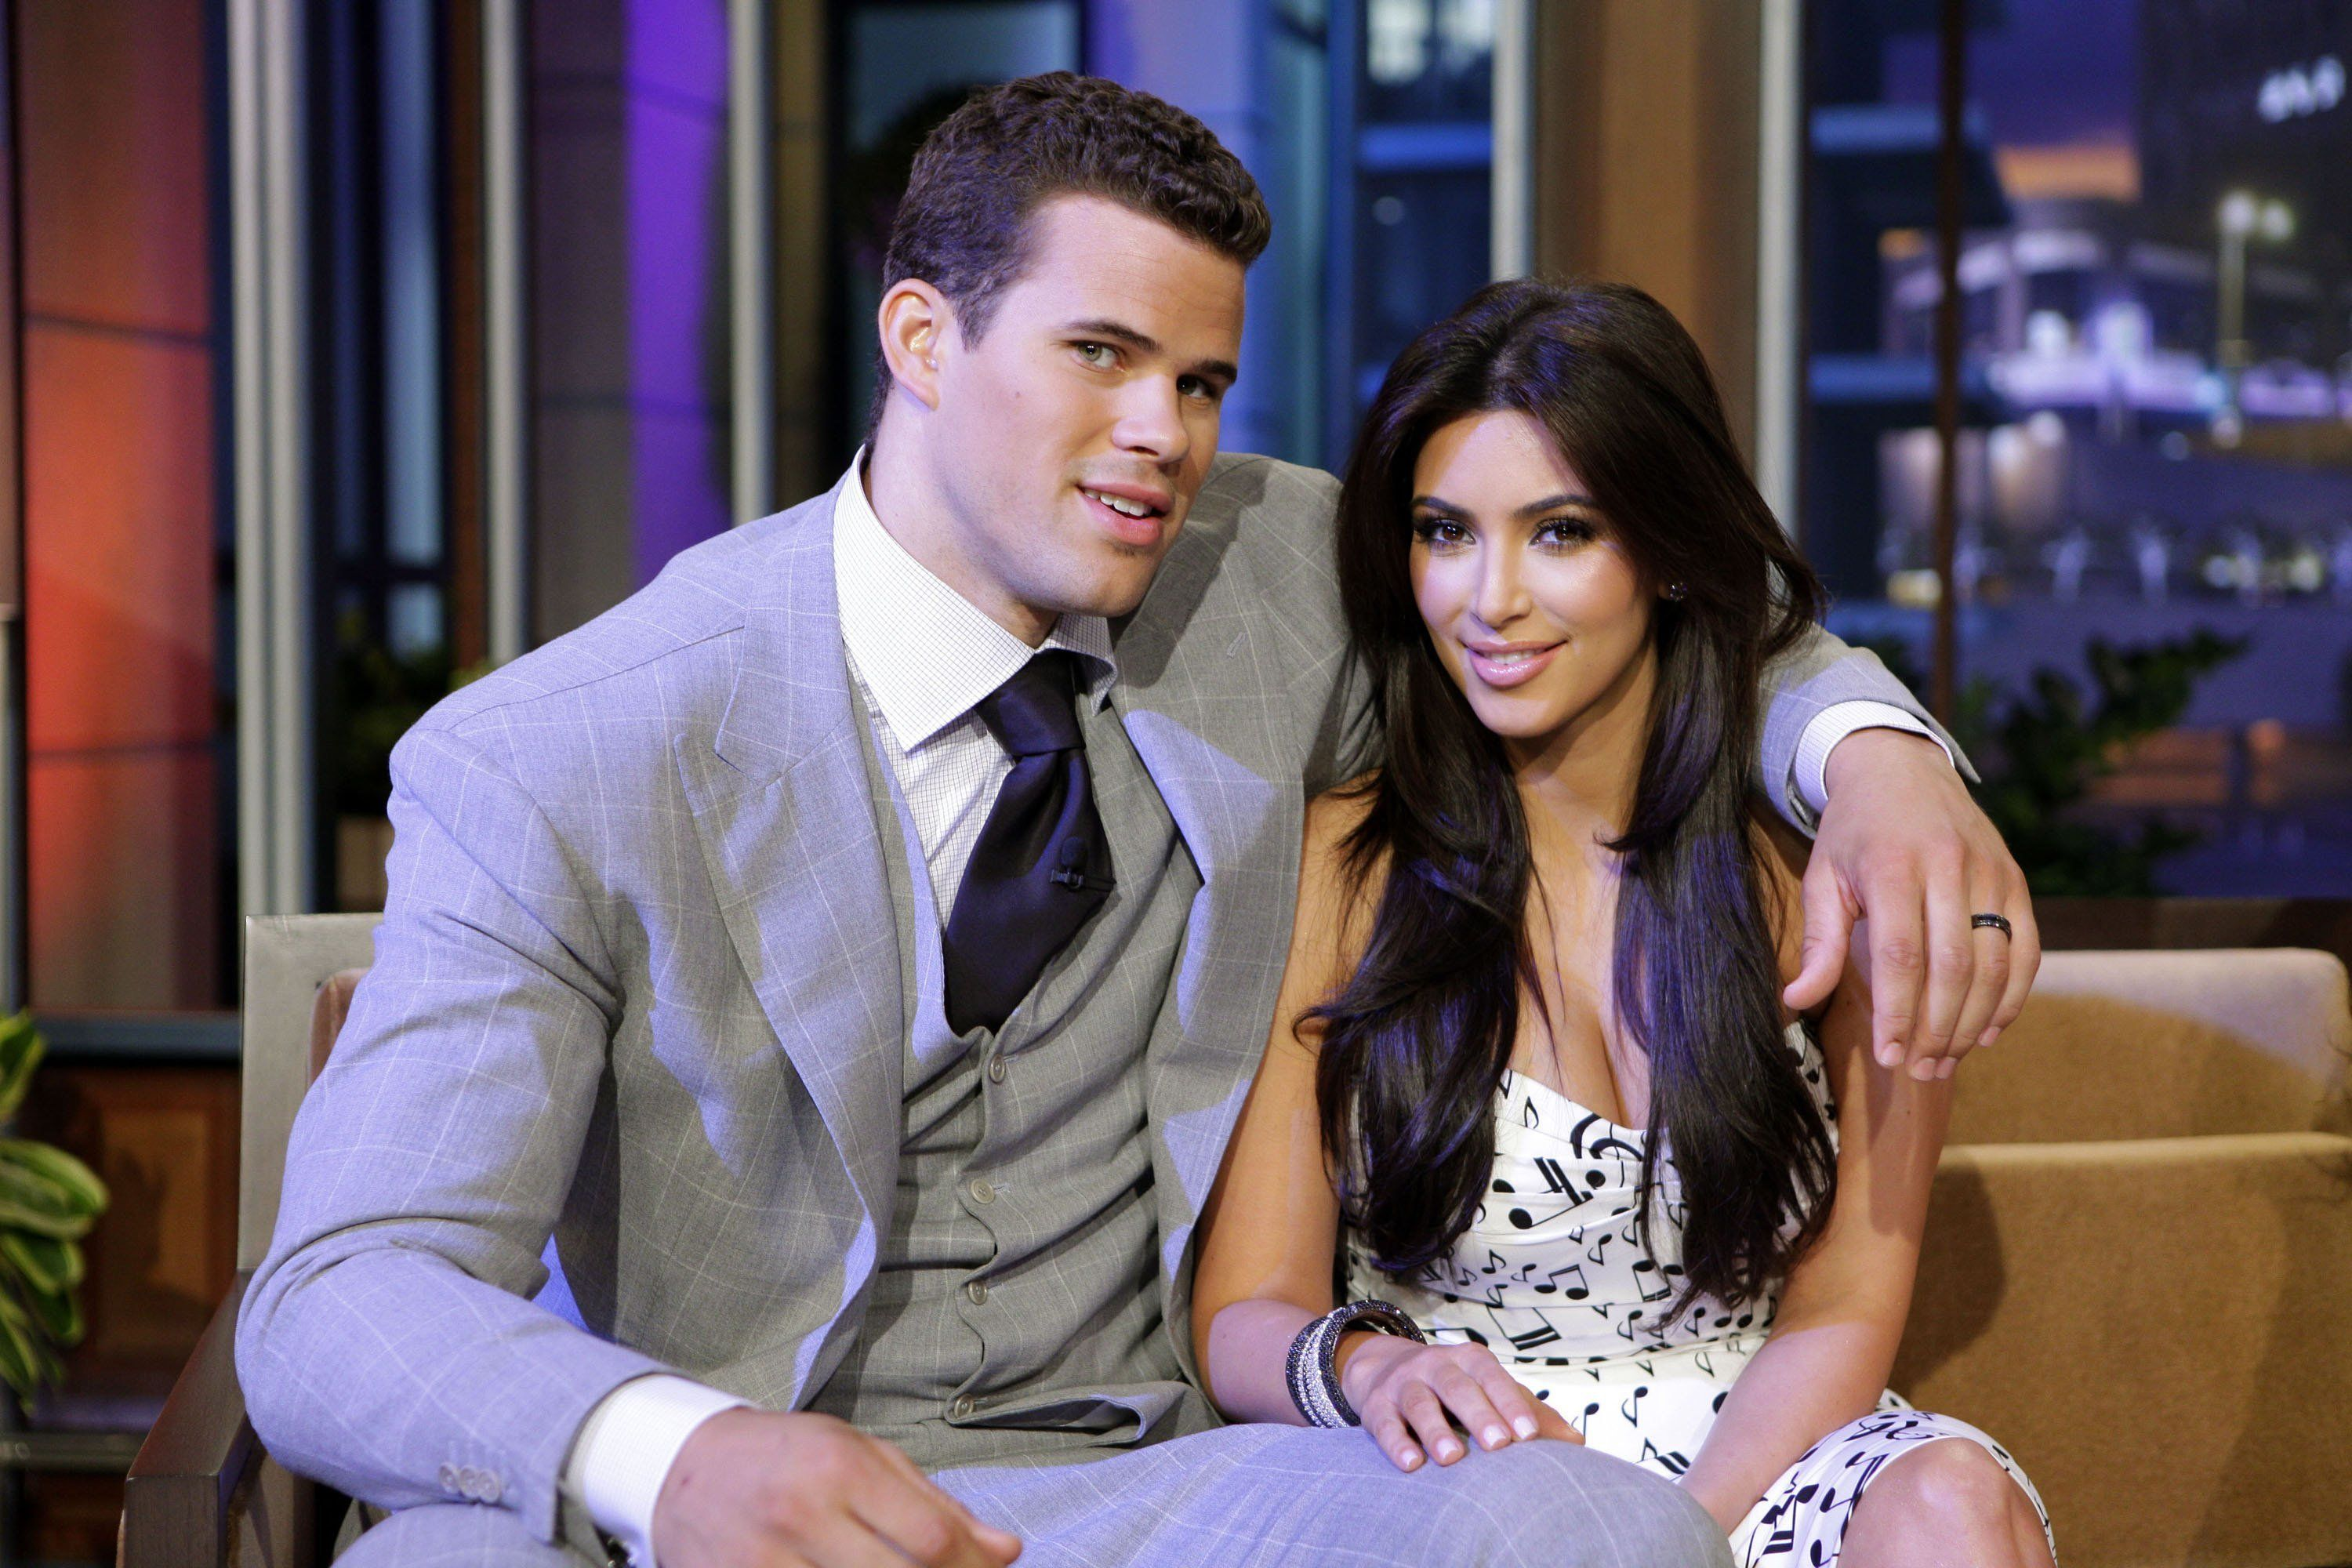 THE TONIGHT SHOW WITH JAY LENO -- (EXCLUSIVE COVERAGE) Episode 4122 -- Pictured: (l-r) Chris Humphries and Kim Kardashian during a commercial break on October 4, 2011 -- Photo by: Paul Drinkwater/NBC/NBCU Photo Bank